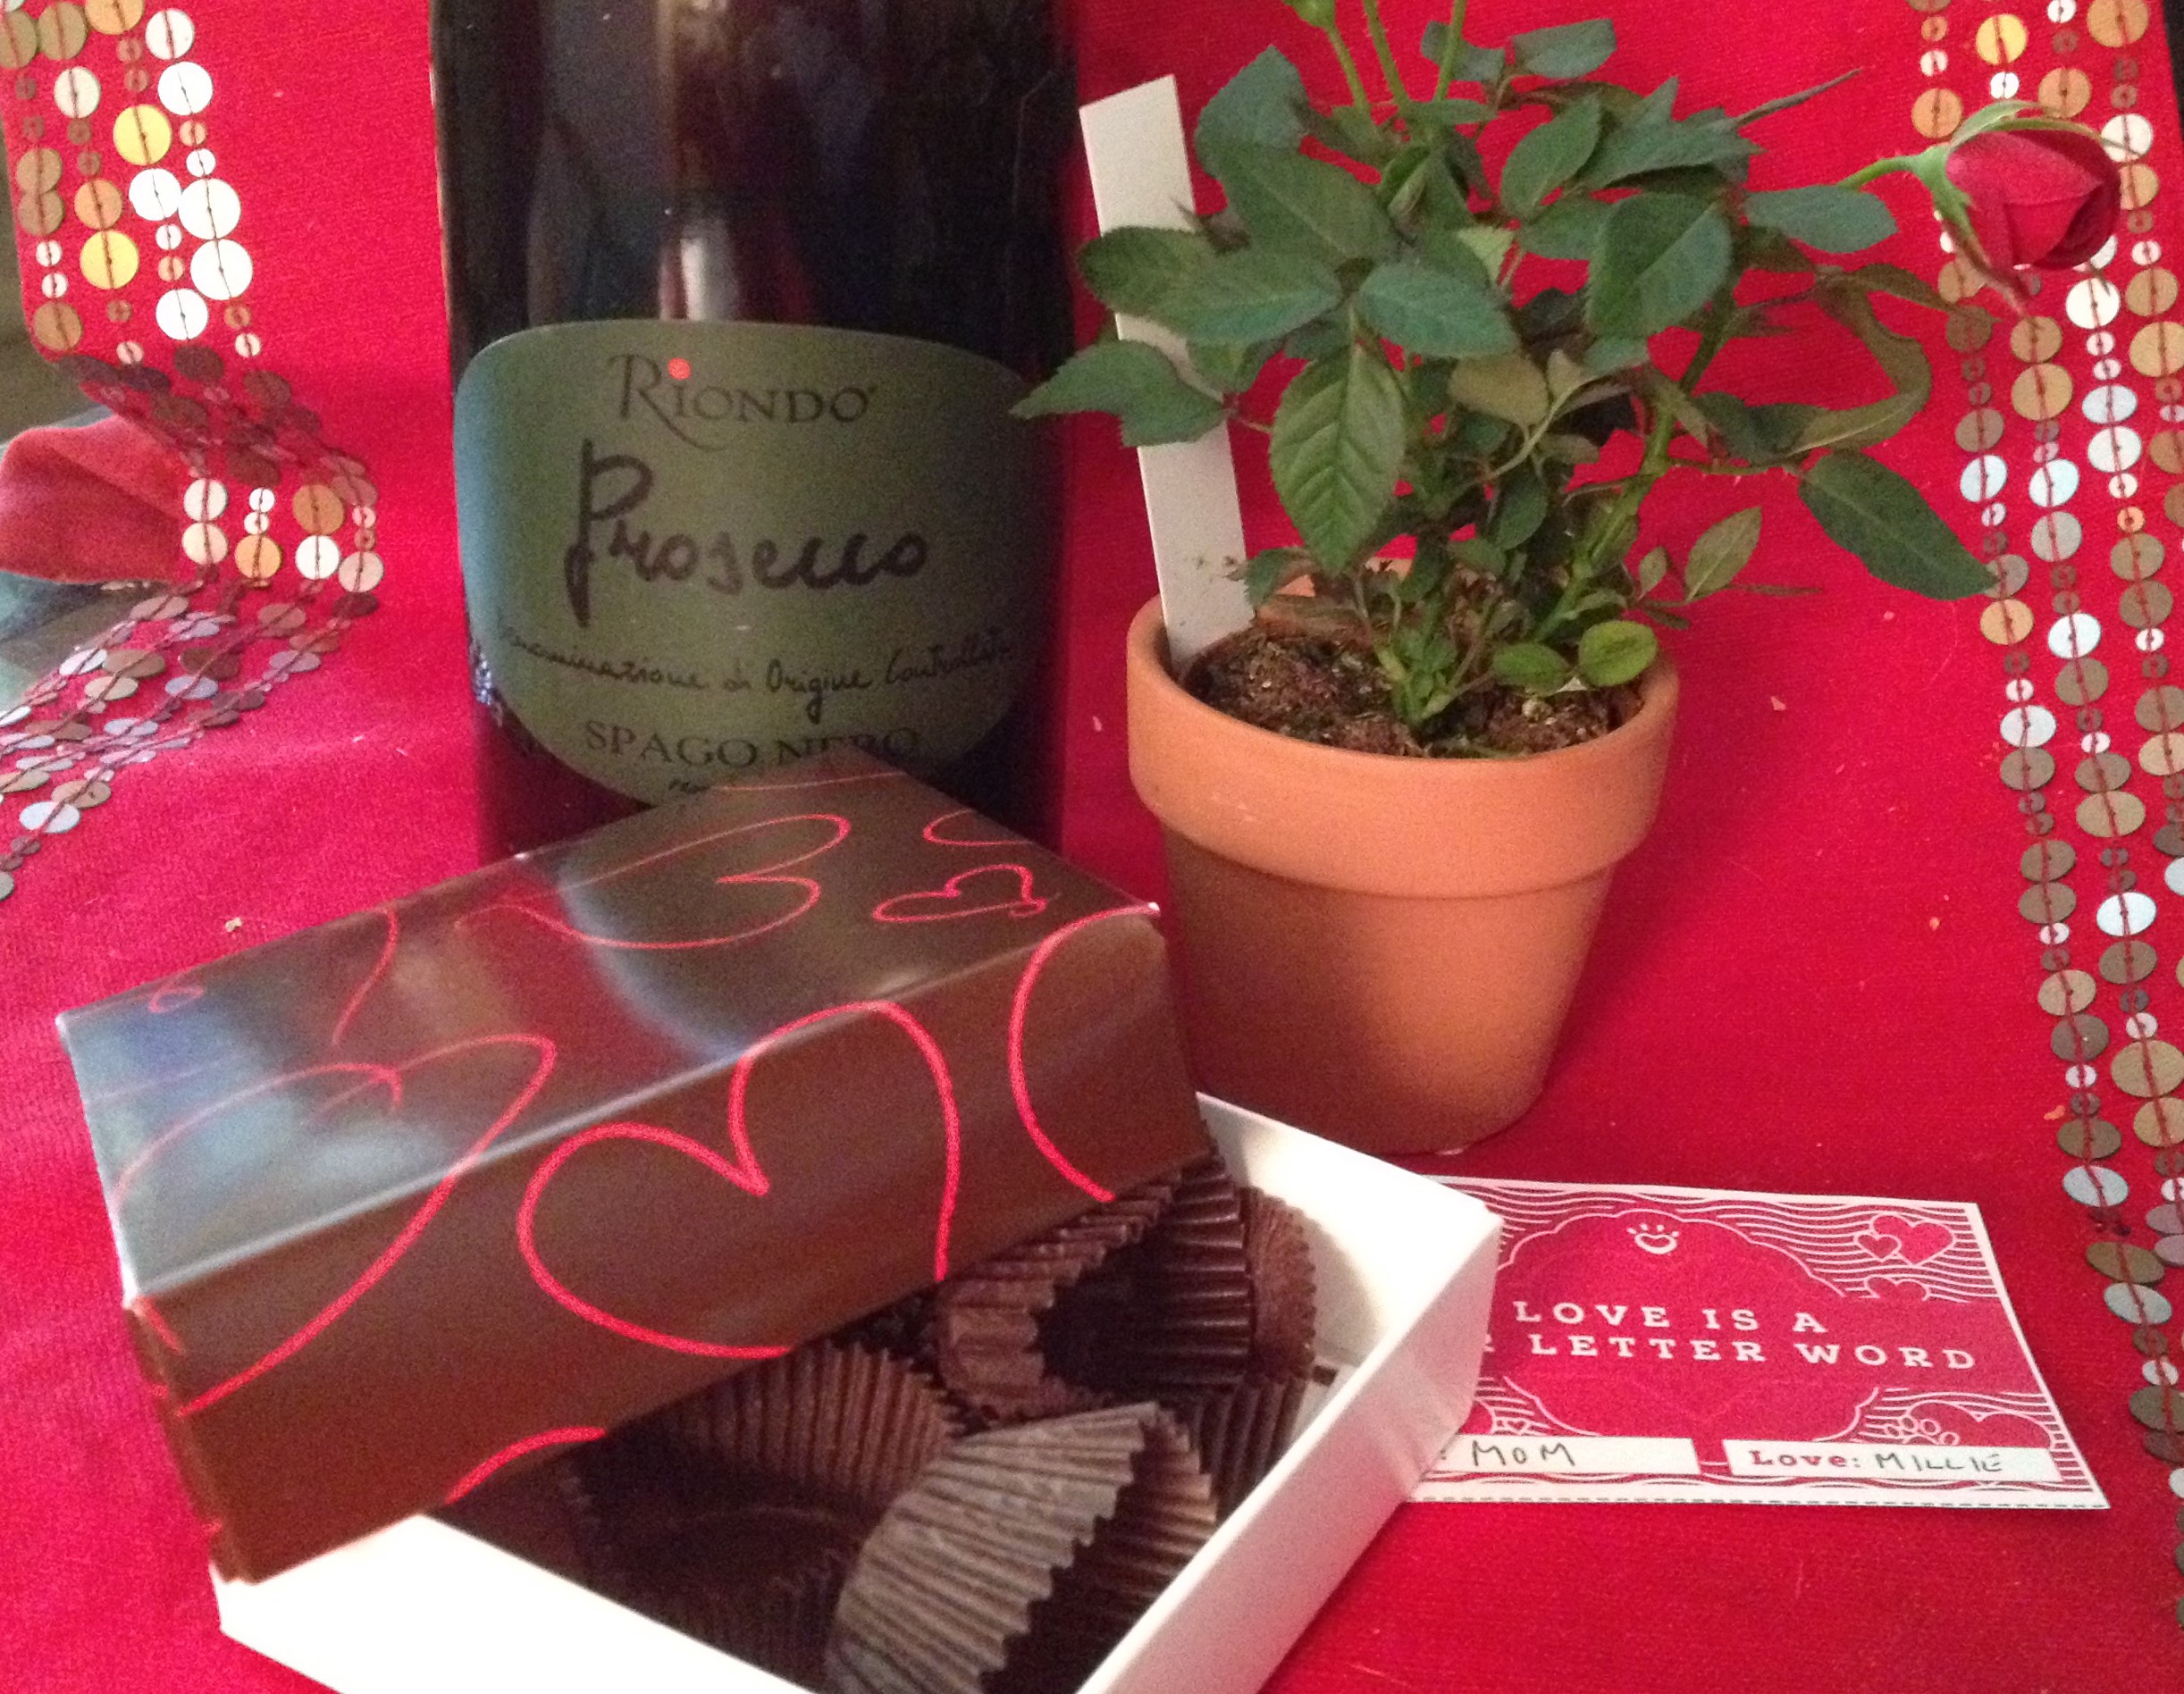 Candy, roses, wine for Valentine's